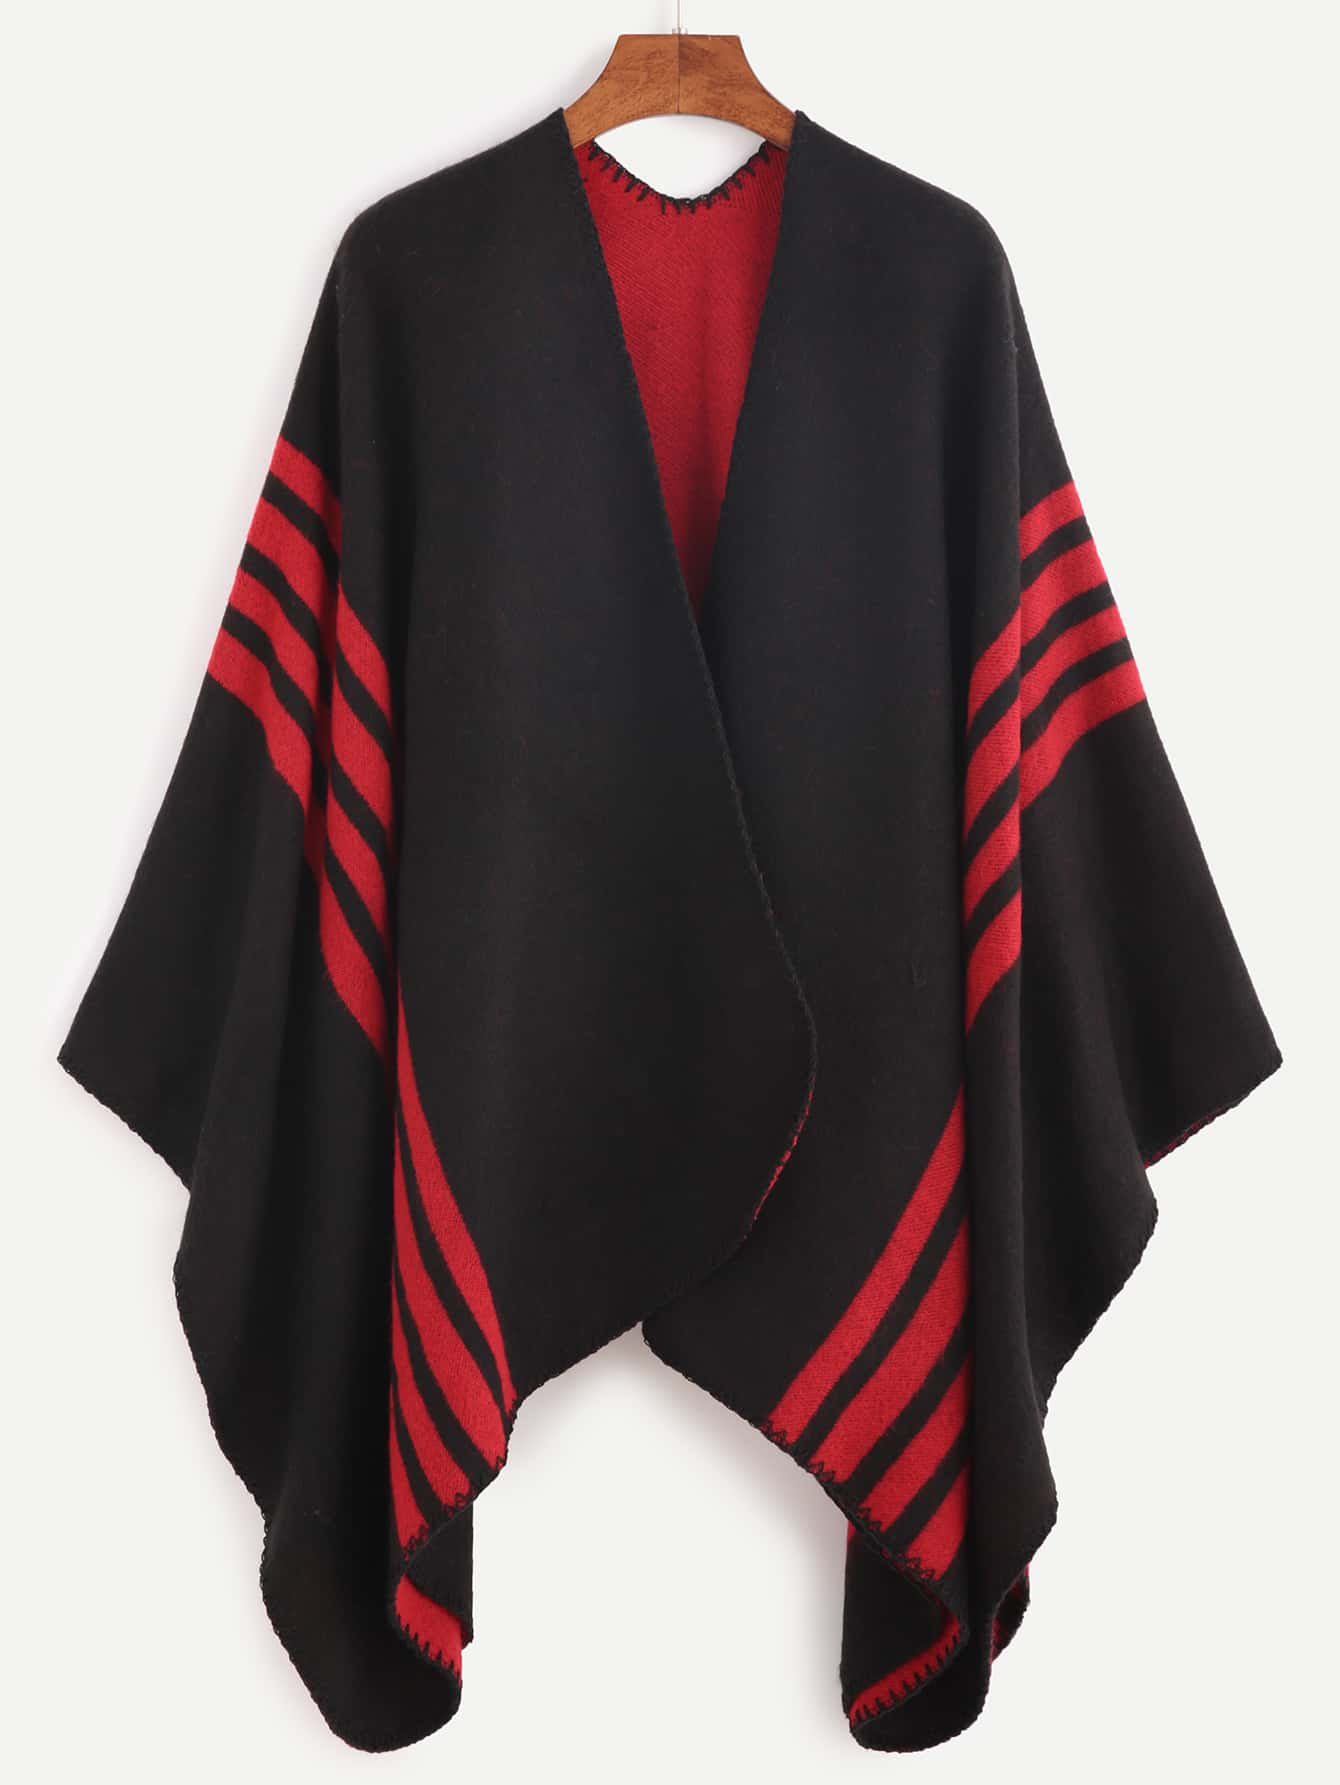 Black Striped Trim Asymmetric Cape CoatBlack Striped Trim Asymmetric Cape Coat<br><br>color: Black<br>size: one-size